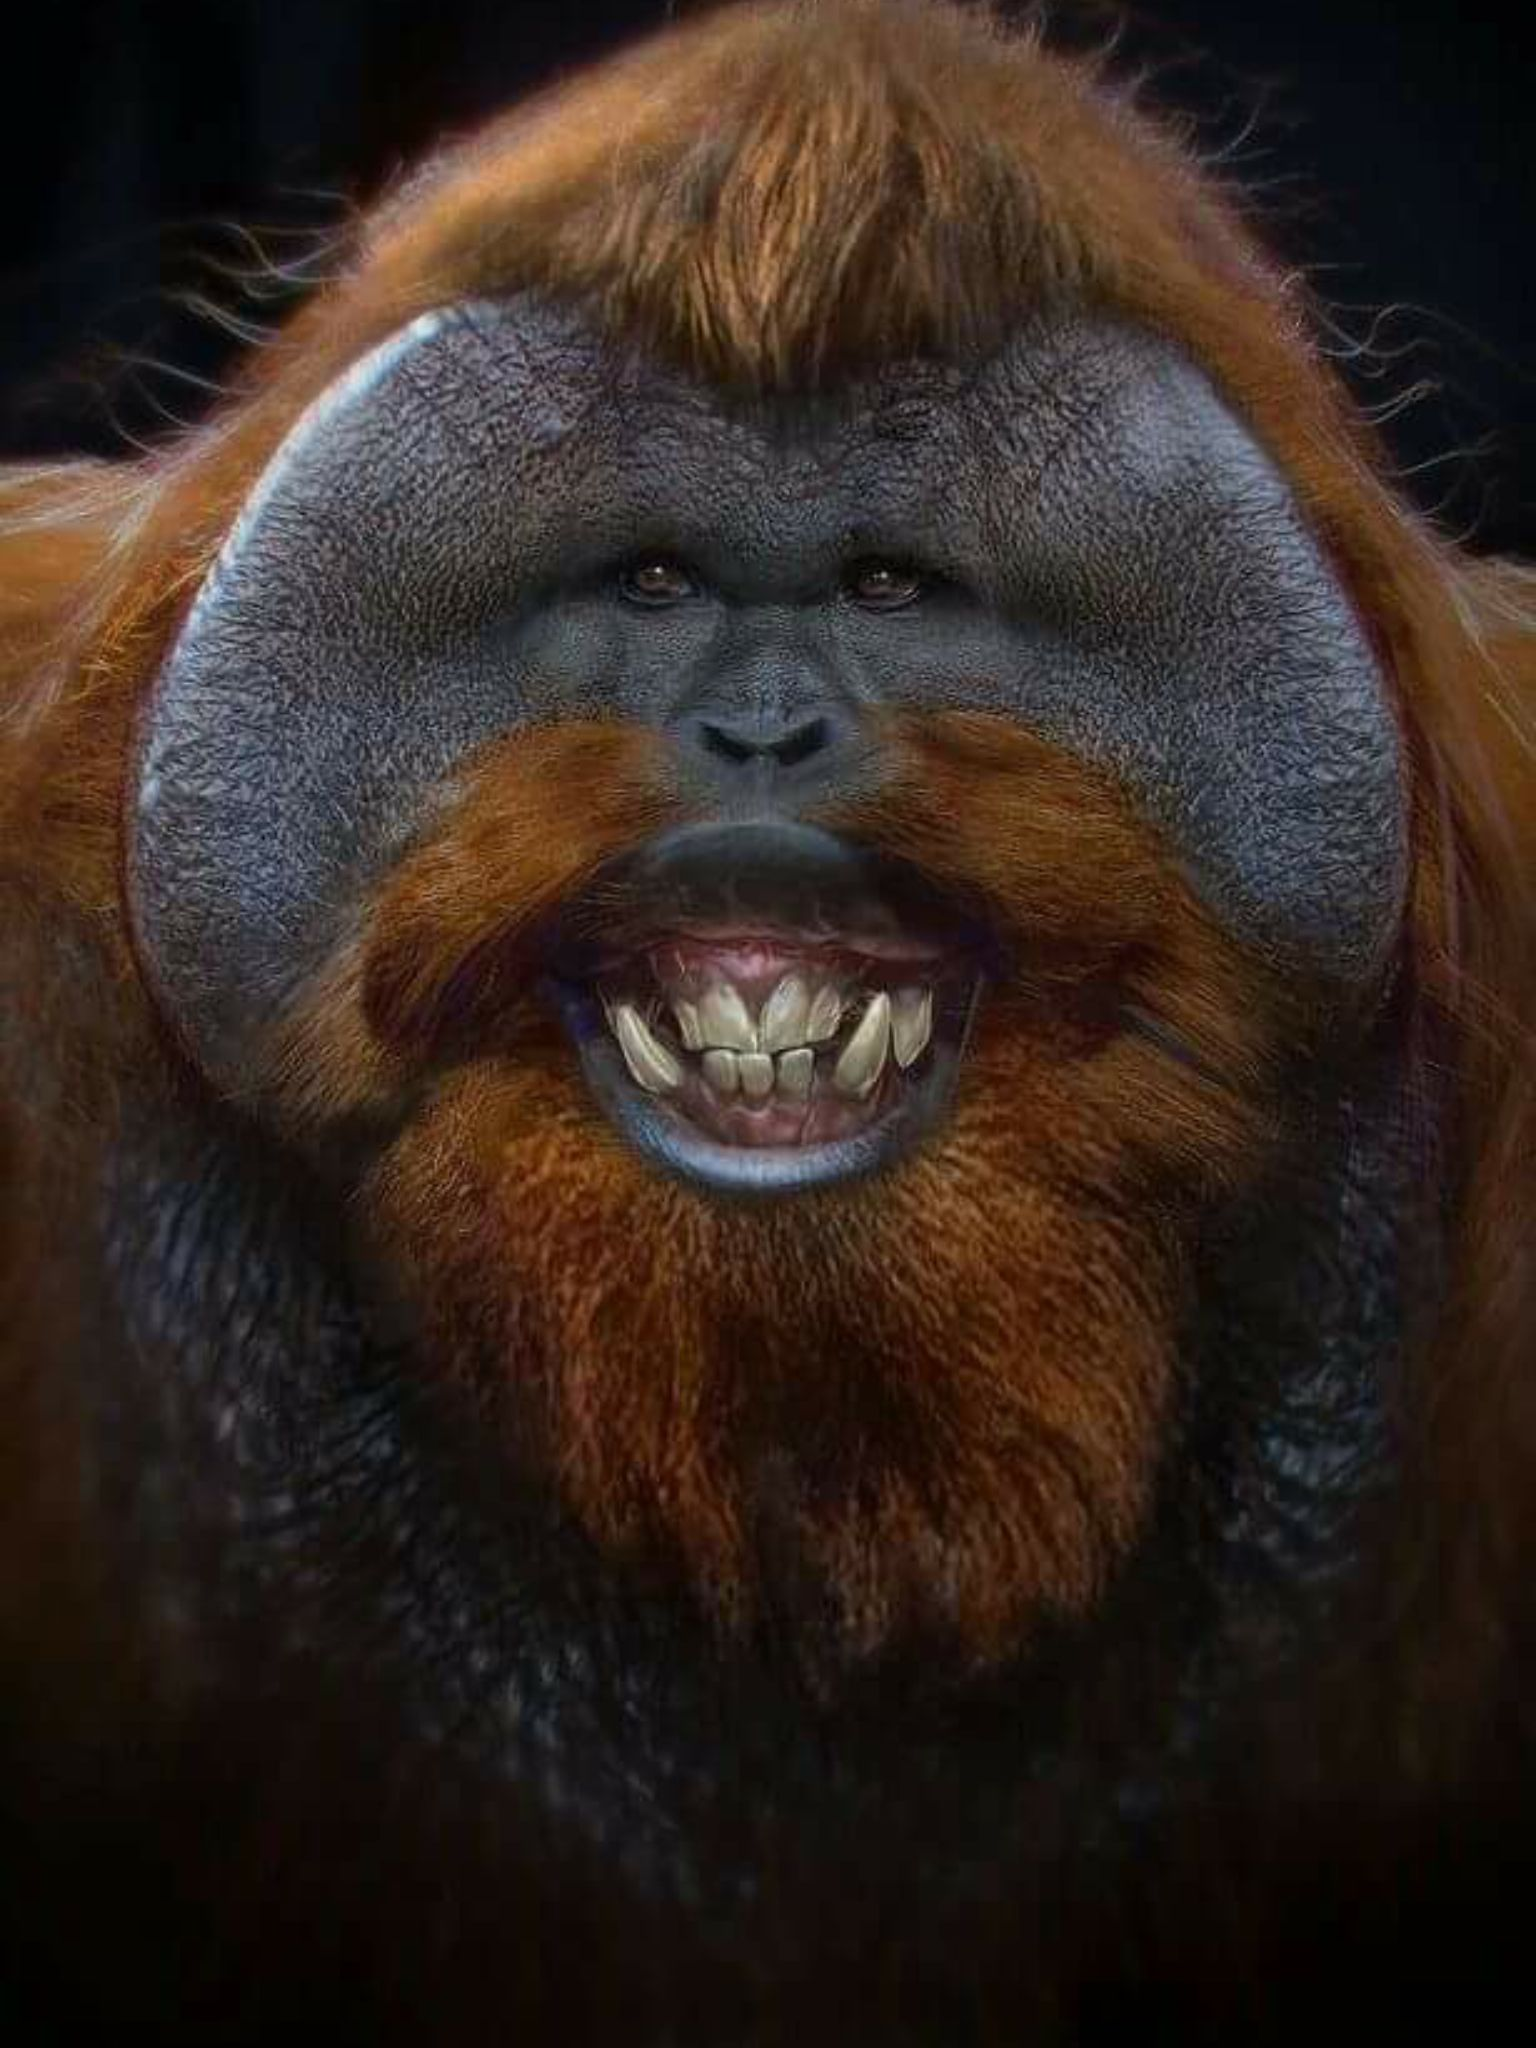 Animals orangutans male orangutan orangutan monkey ugly monkey ape monkey